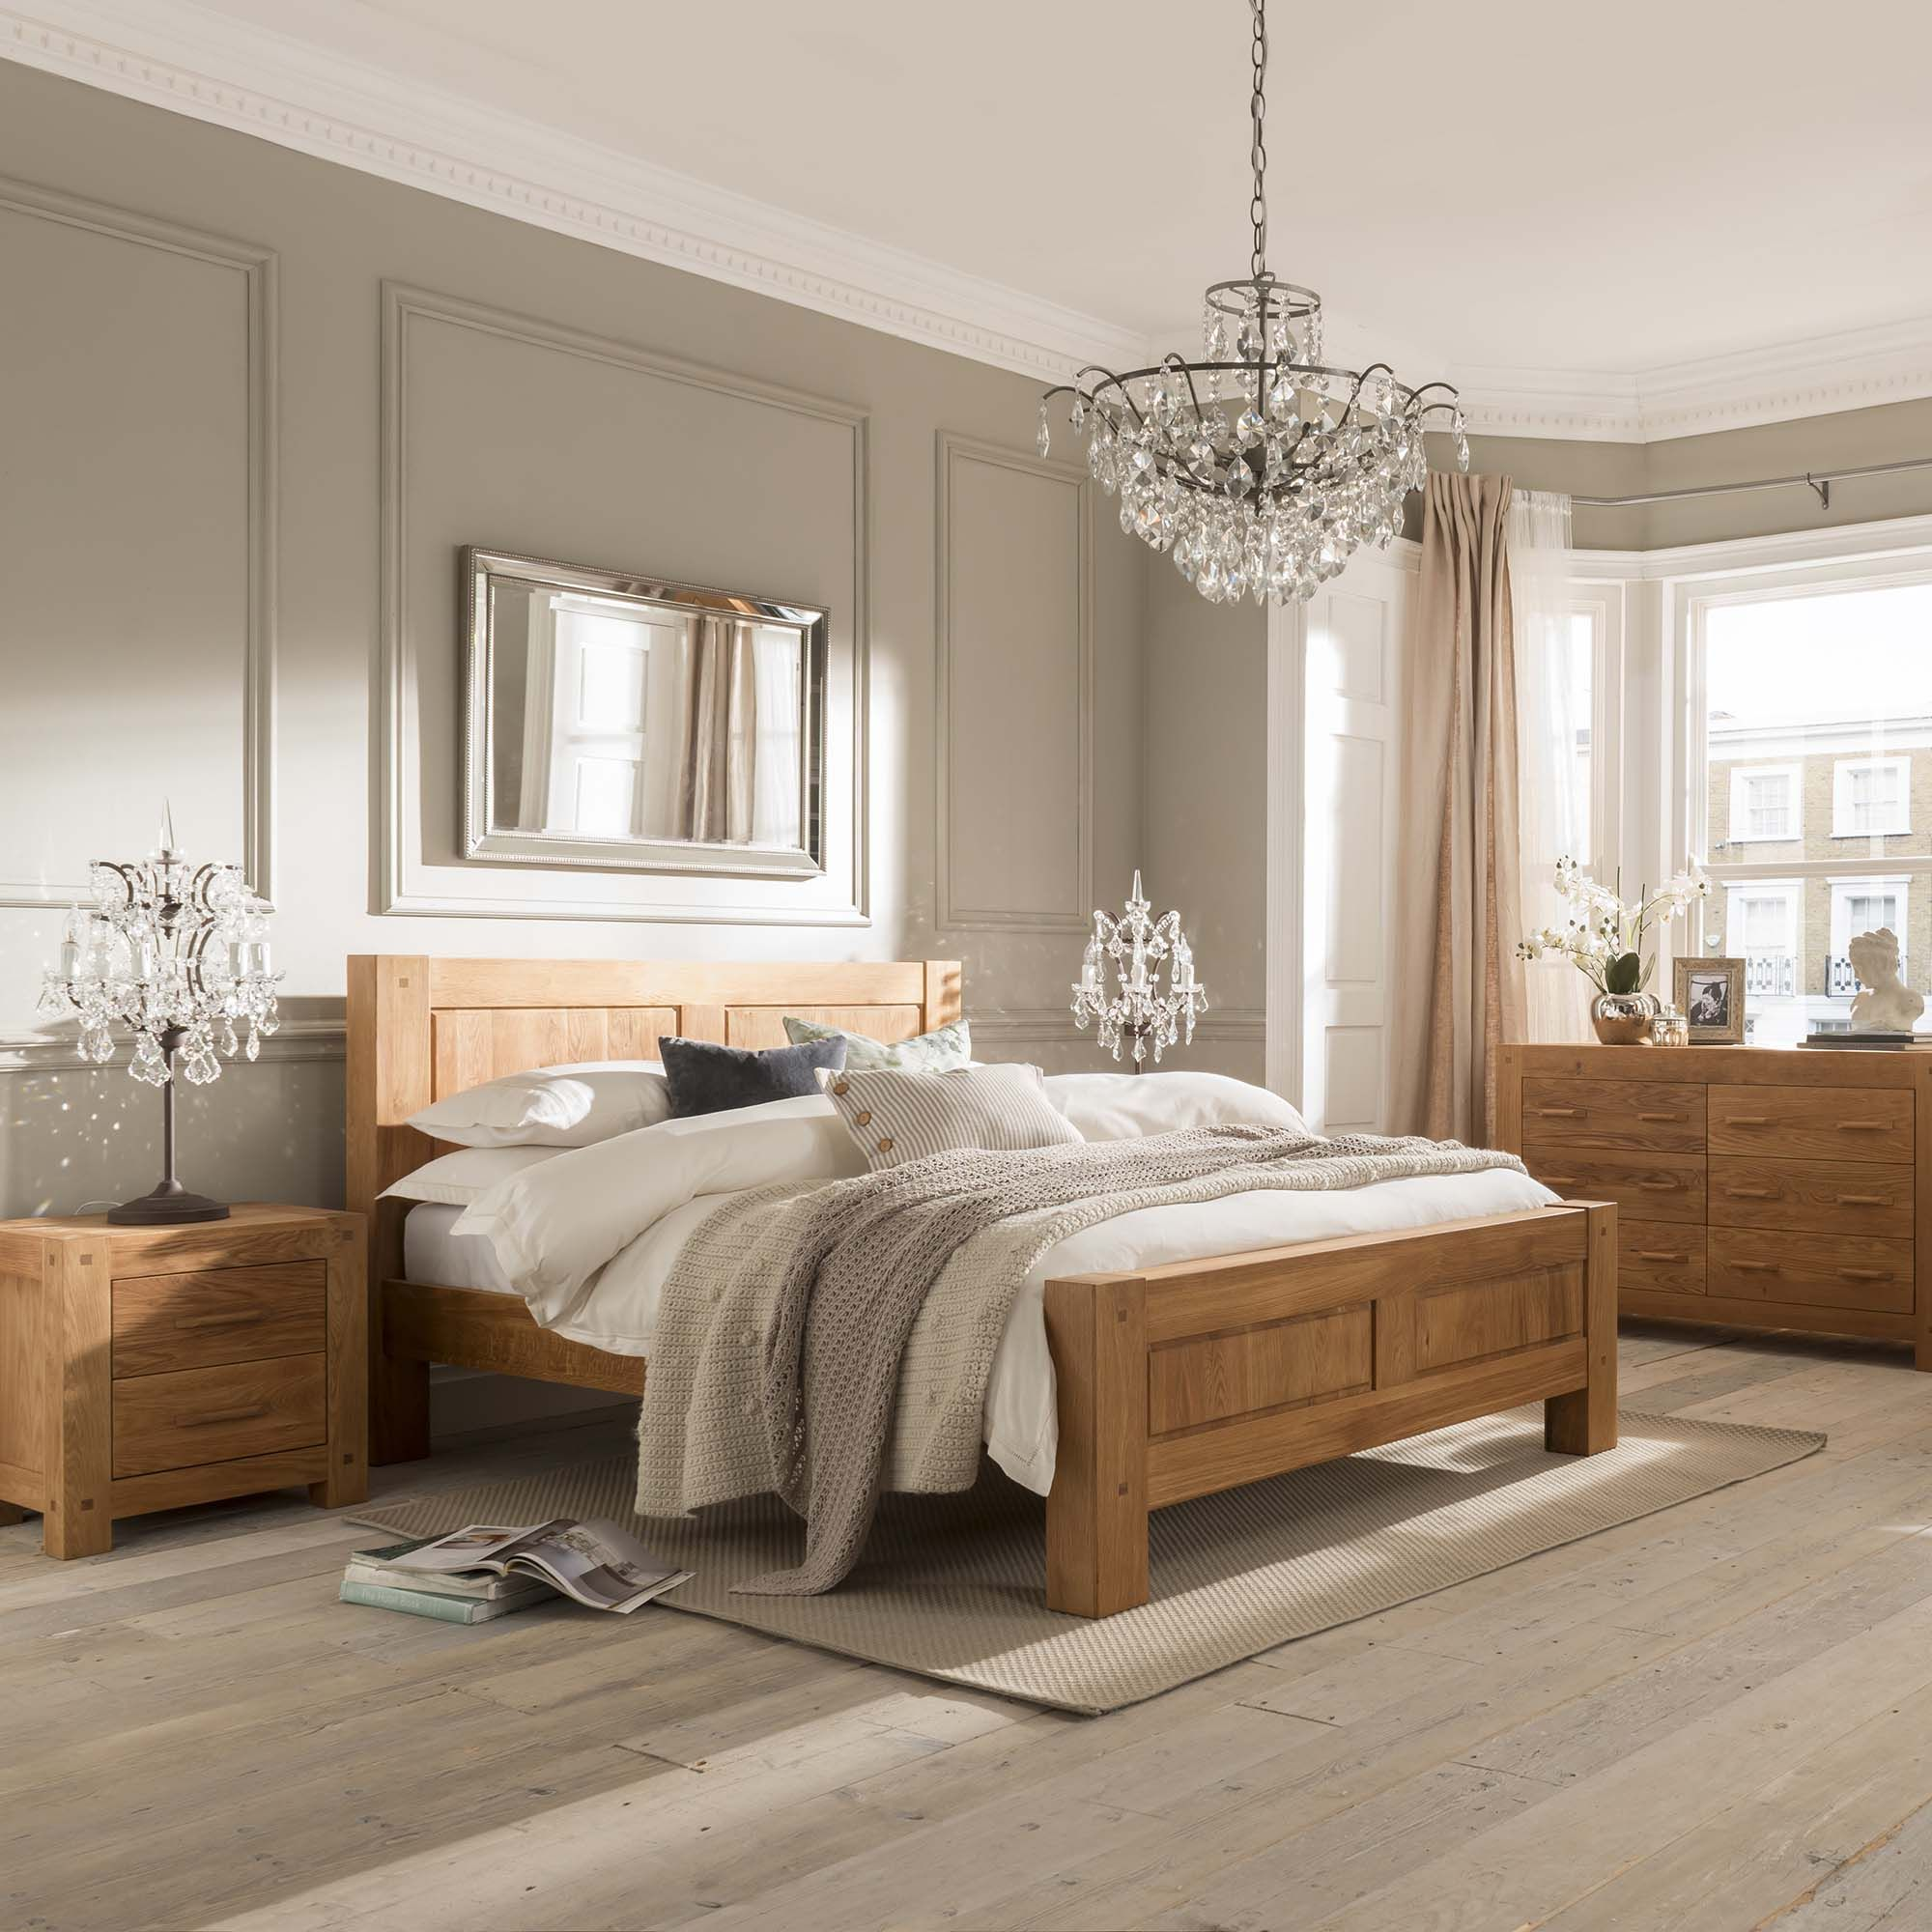 combining quality and style the tacoma bedroom range has a simple